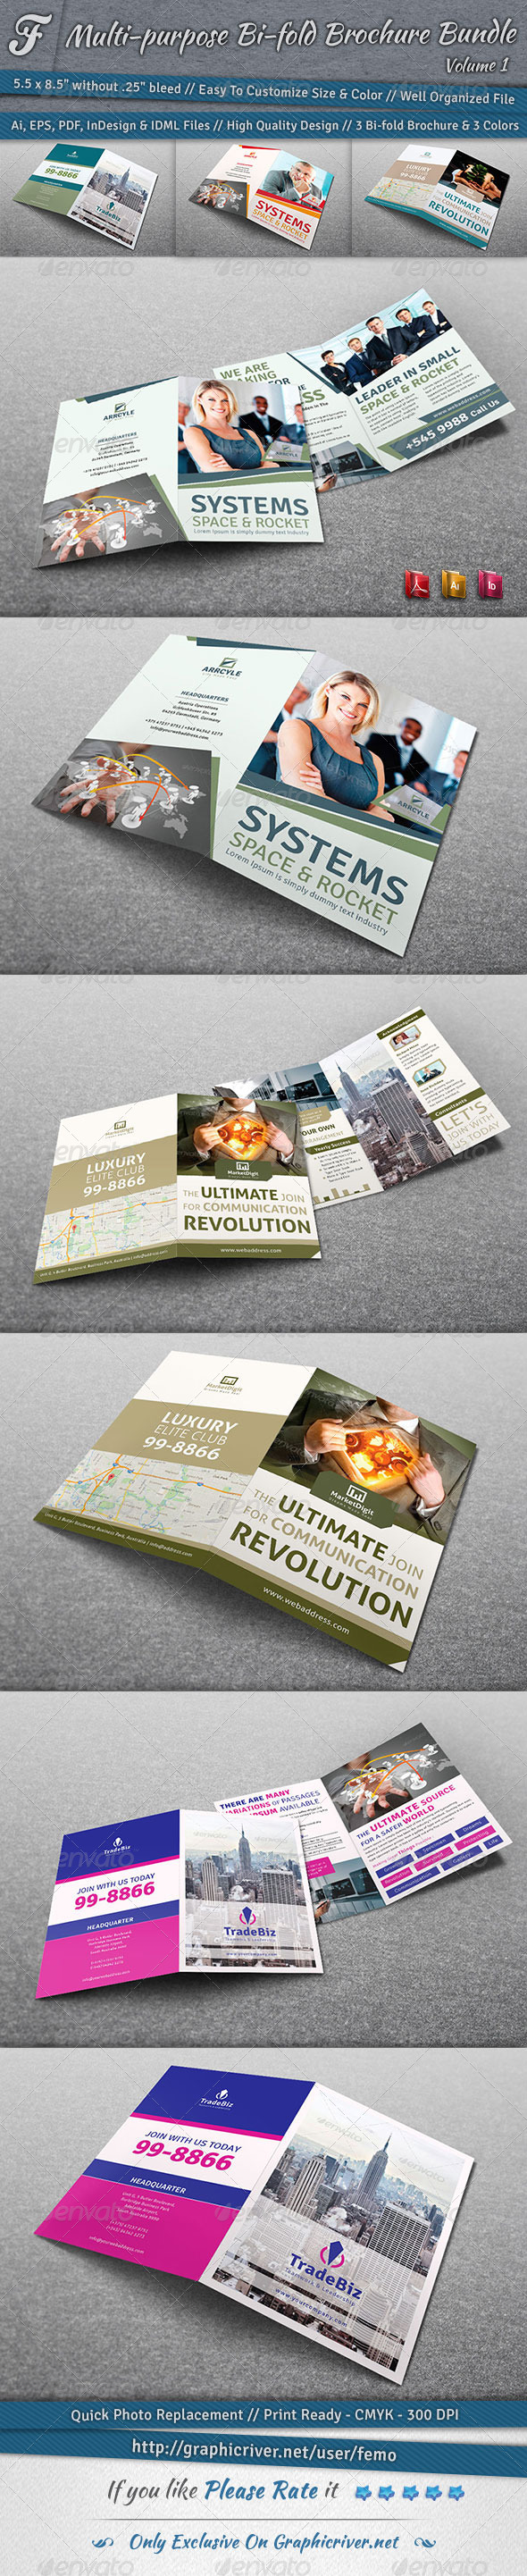 Multi-purpose Bi-fold Brochure Bundle | Volume 1 - Corporate Brochures